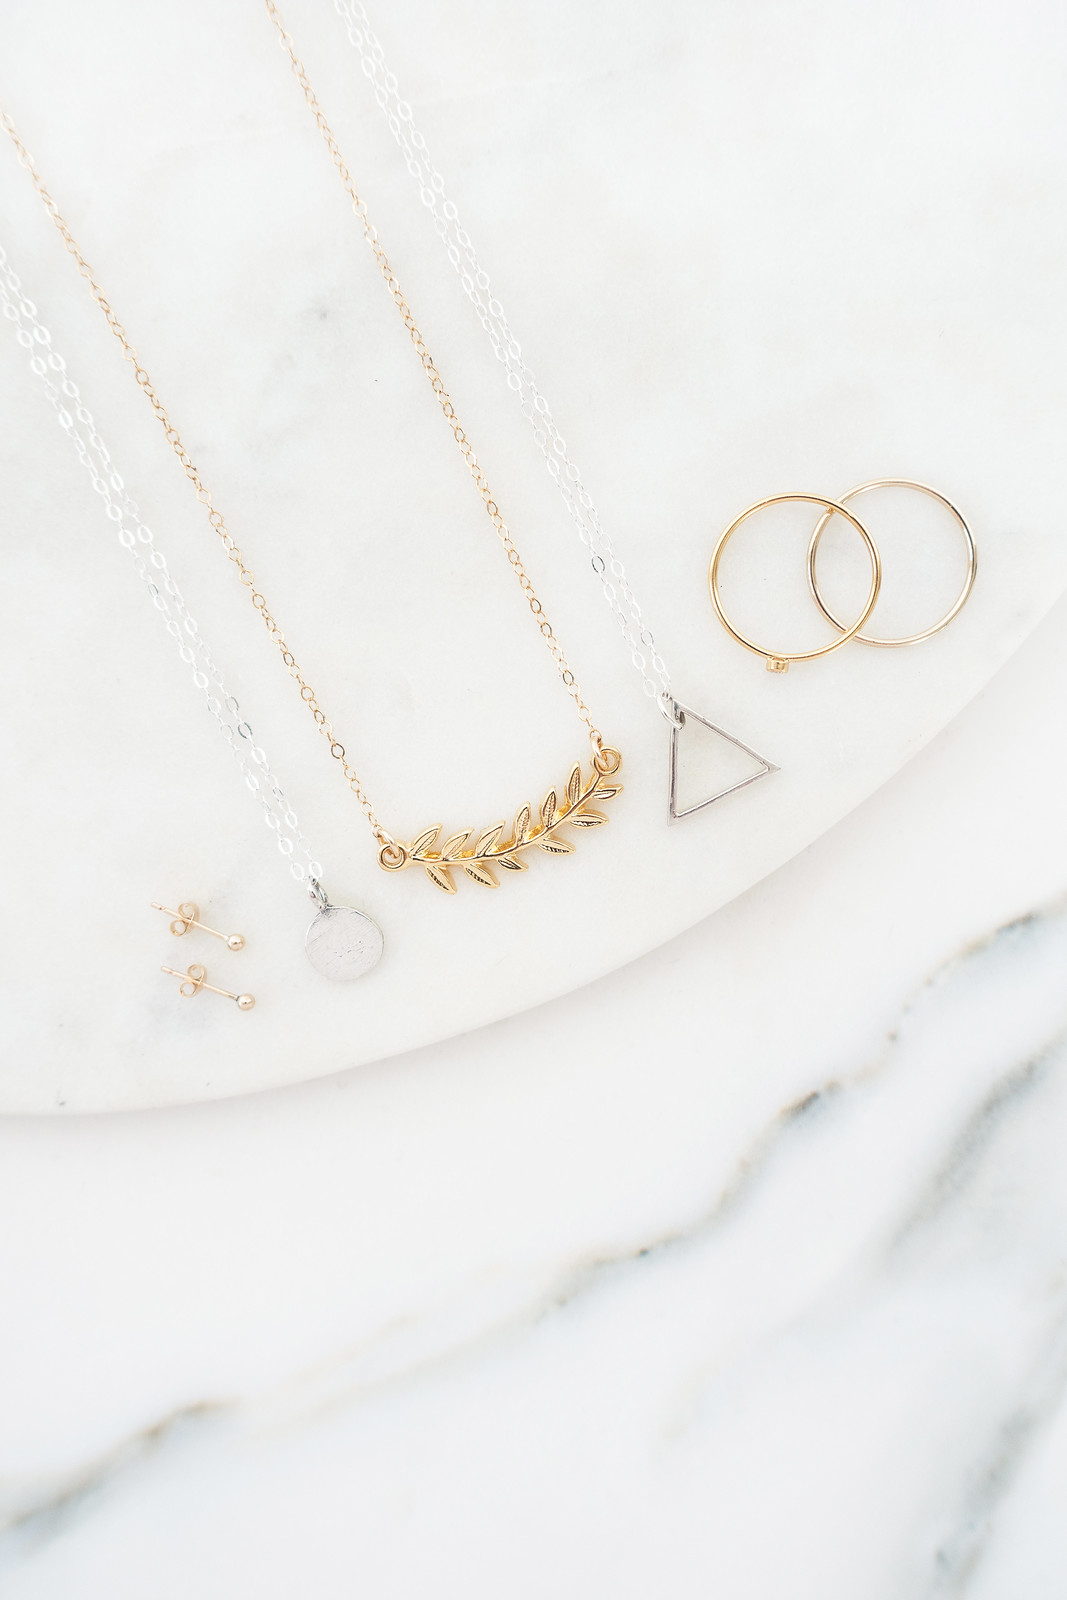 A Beginner's Guide To Minimal Jewellery